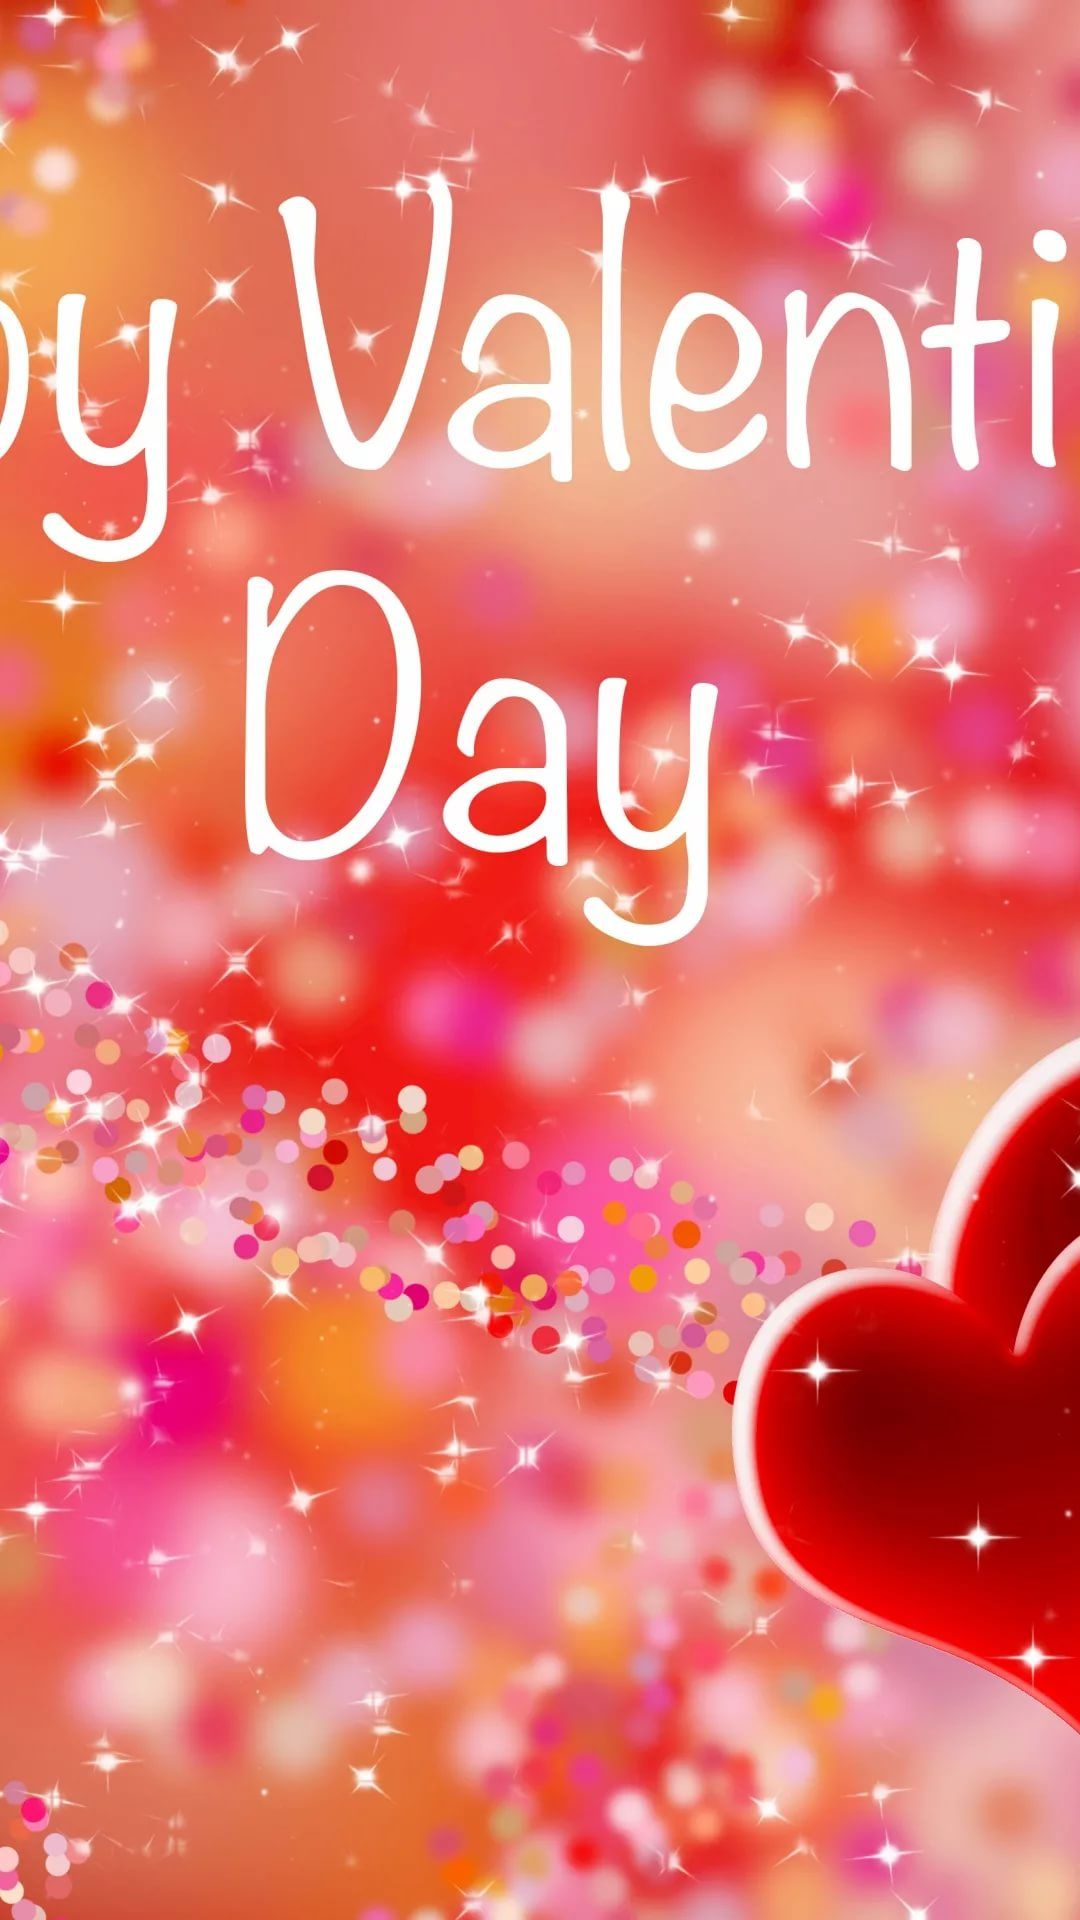 Valentine's Day wallpaper for android